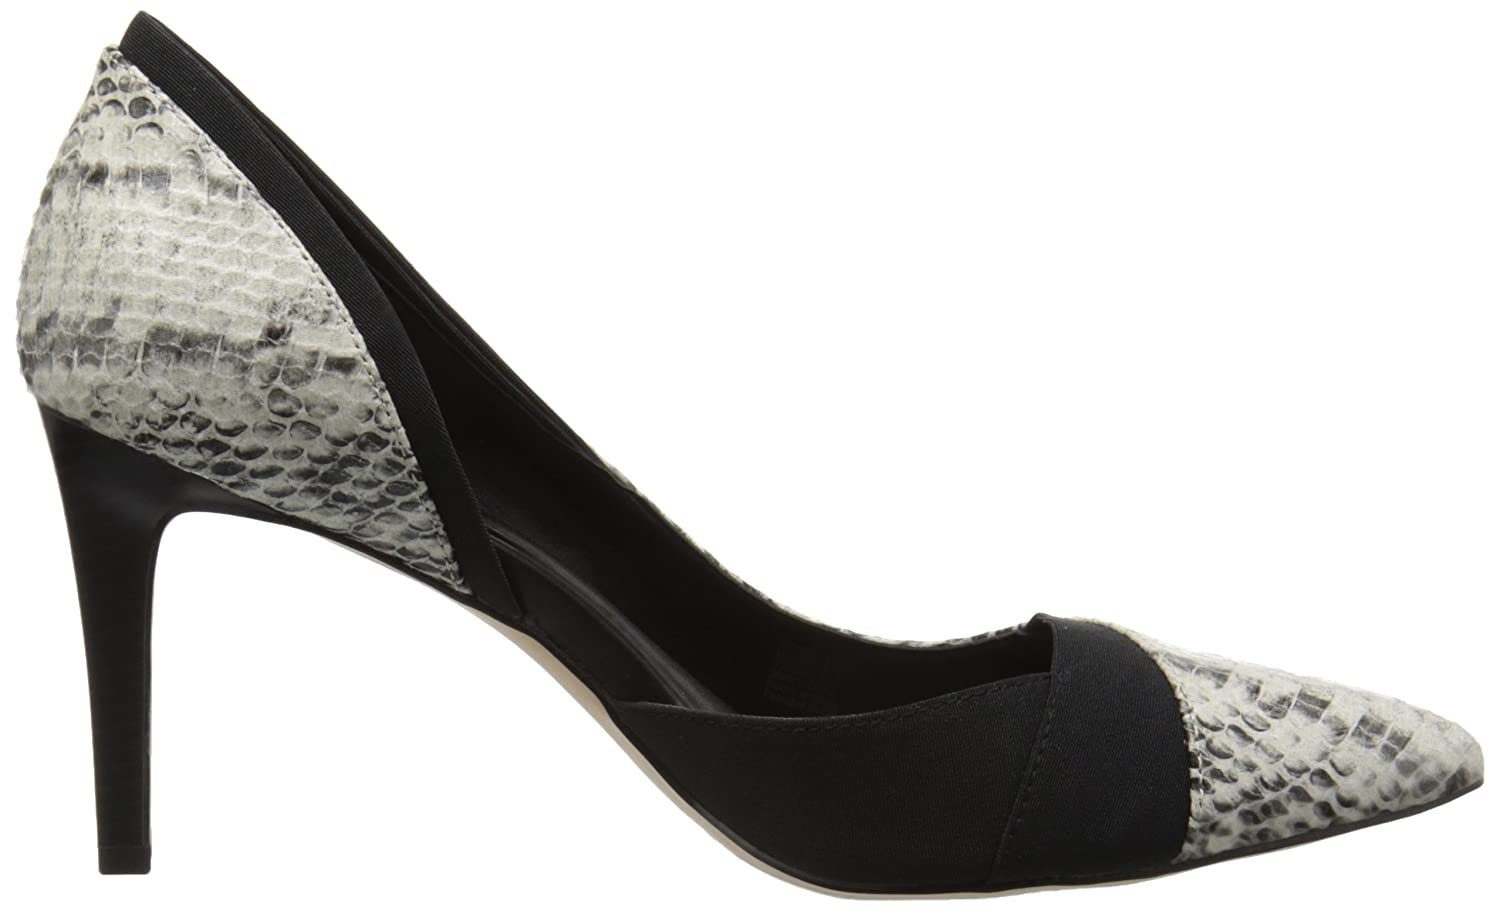 Calvin Klein Women's 9 Byrdie Dress Pump B01DFMGFO4 9 Women's B(M) US|Black/Cream fd1ffe